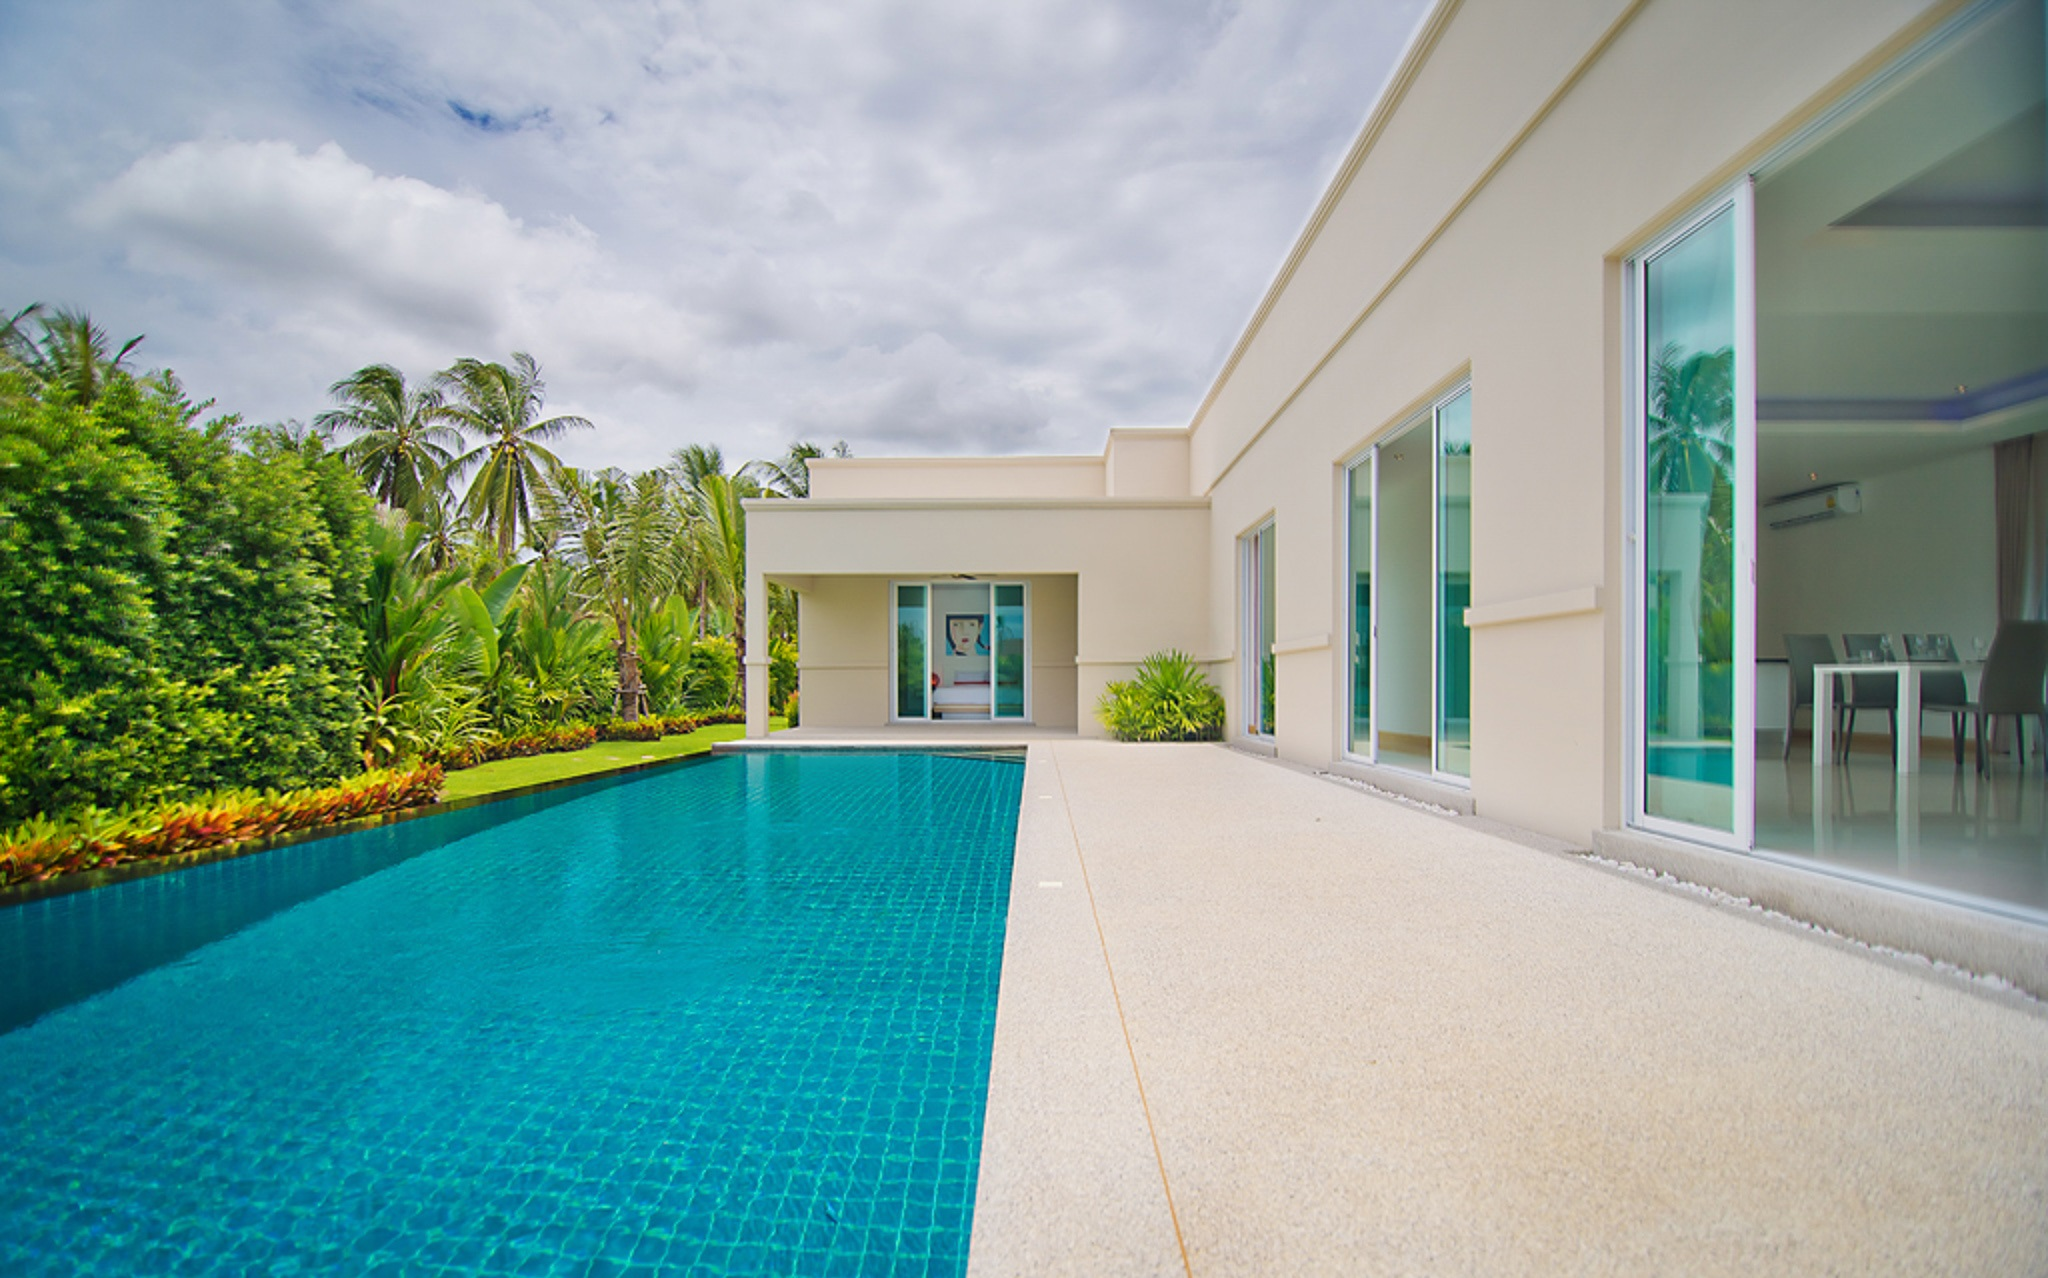 Super Modern Villa Reduced by 800,000 THB - Designer Kitchen & Infinity Pool